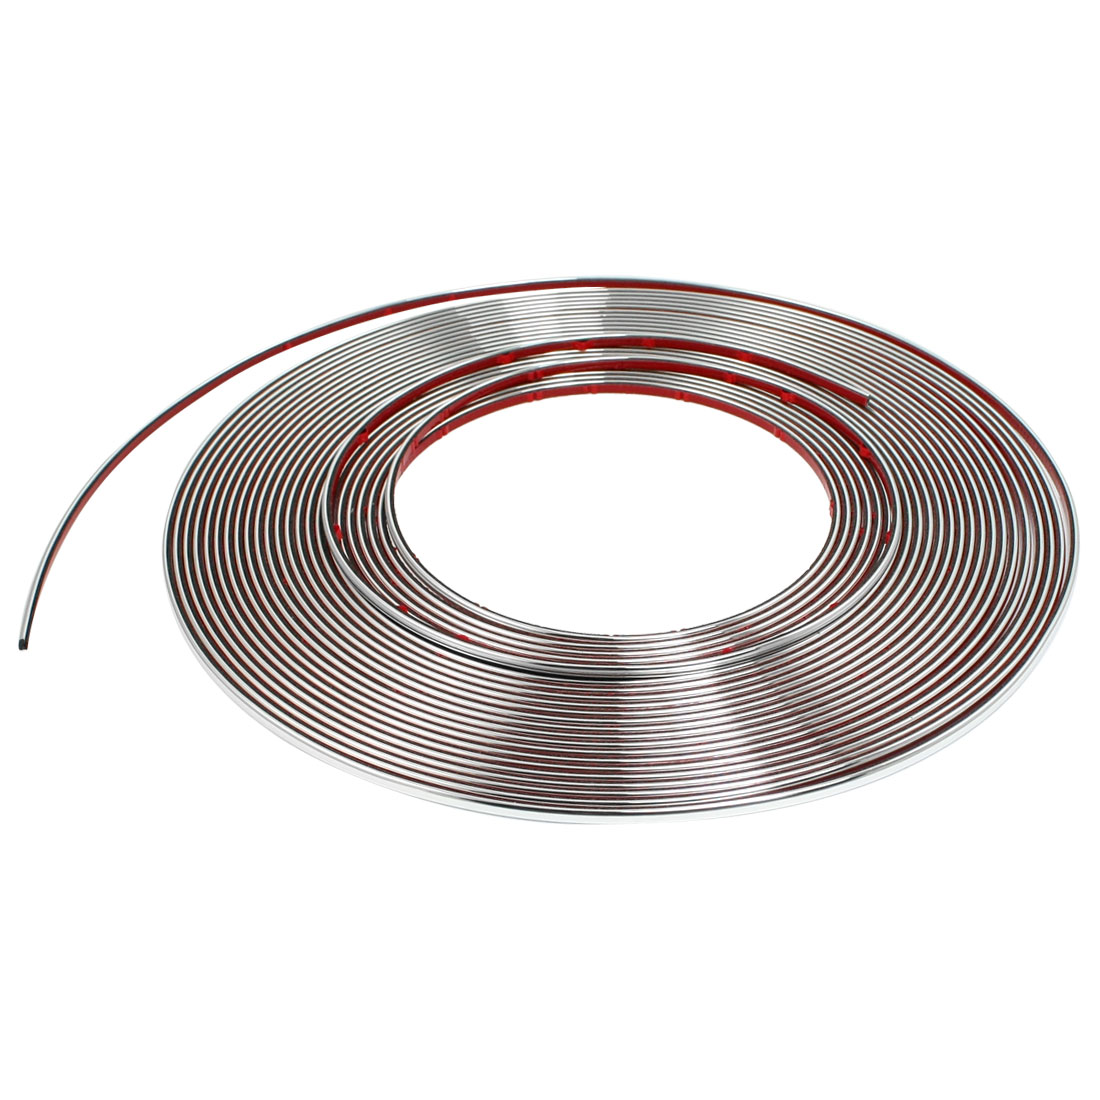 Silver Tone PVC Adhesive Car Window Moulding Trim Strip Line 15M x 4mm